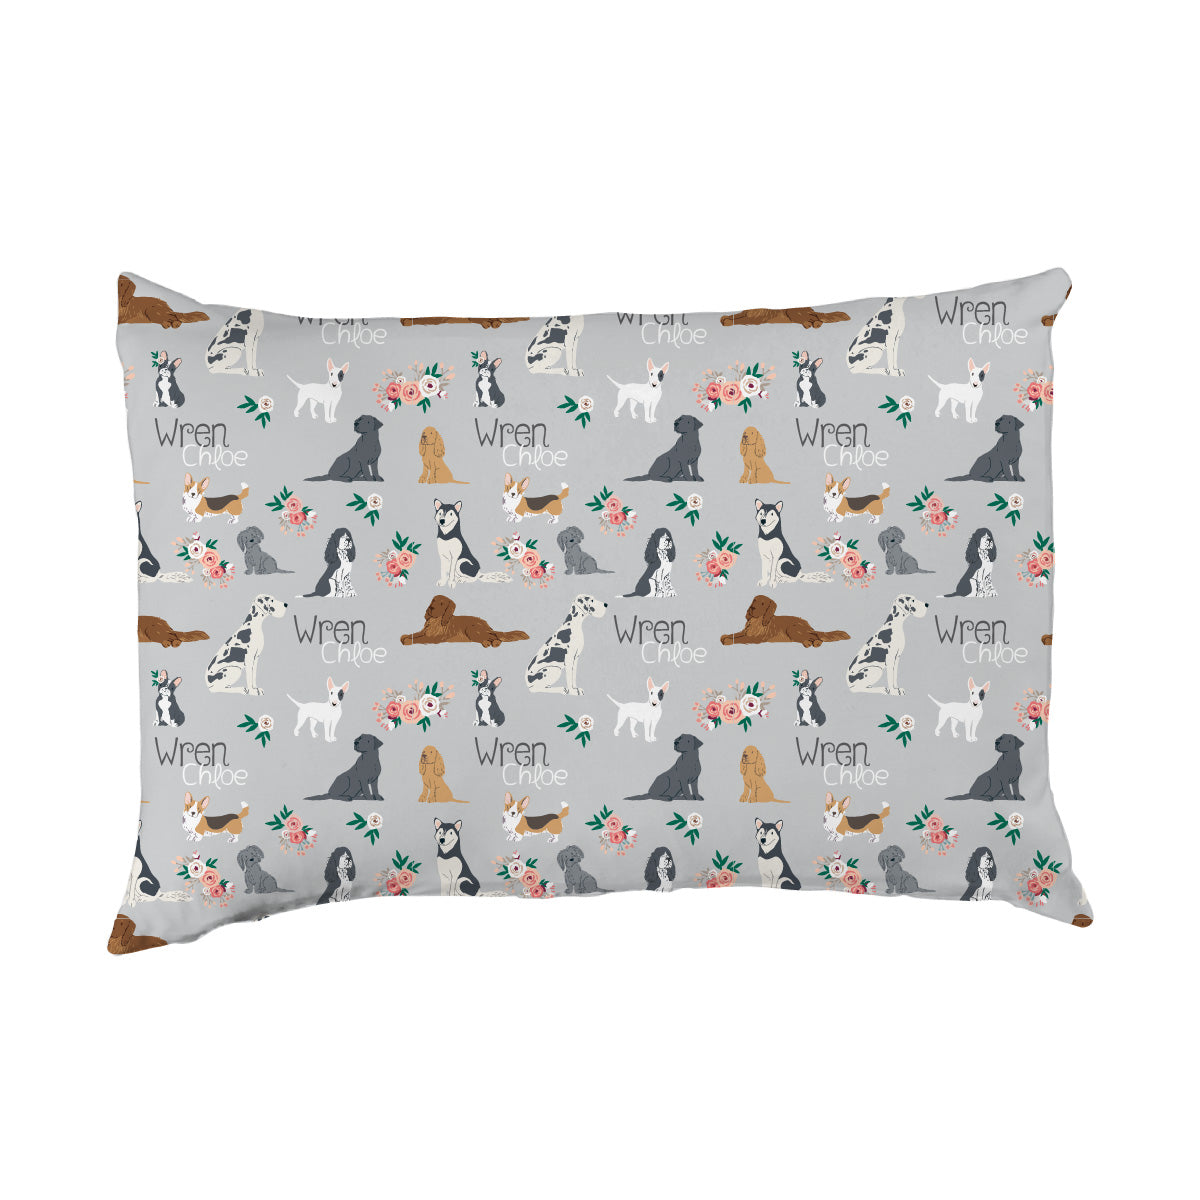 Wren's Pack of Puppies | Big Kid Pillow Case